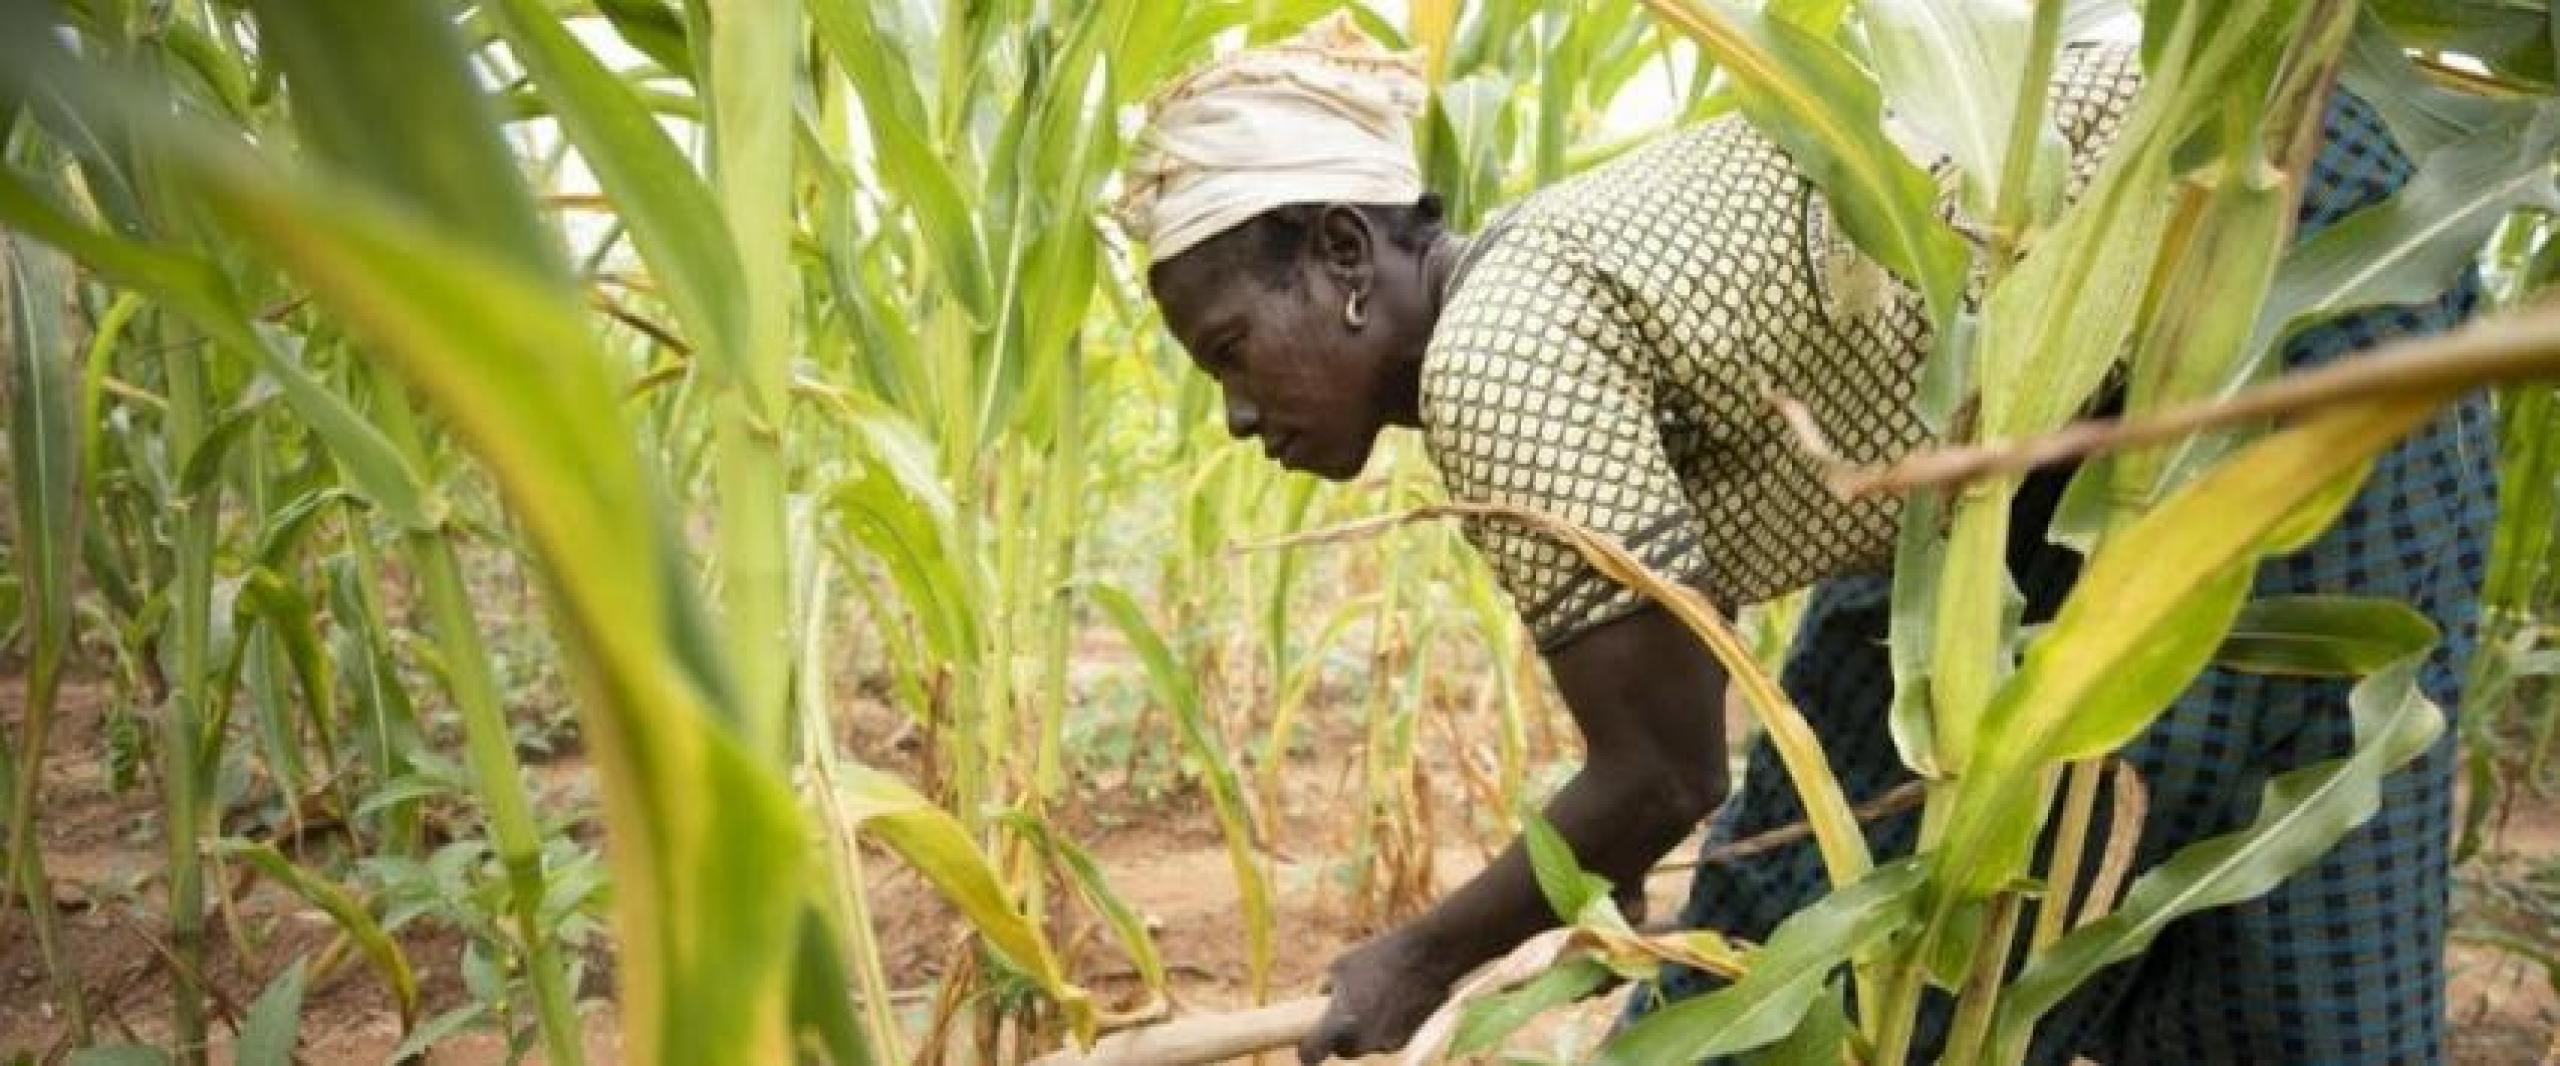 Photograph of woman working in a field.